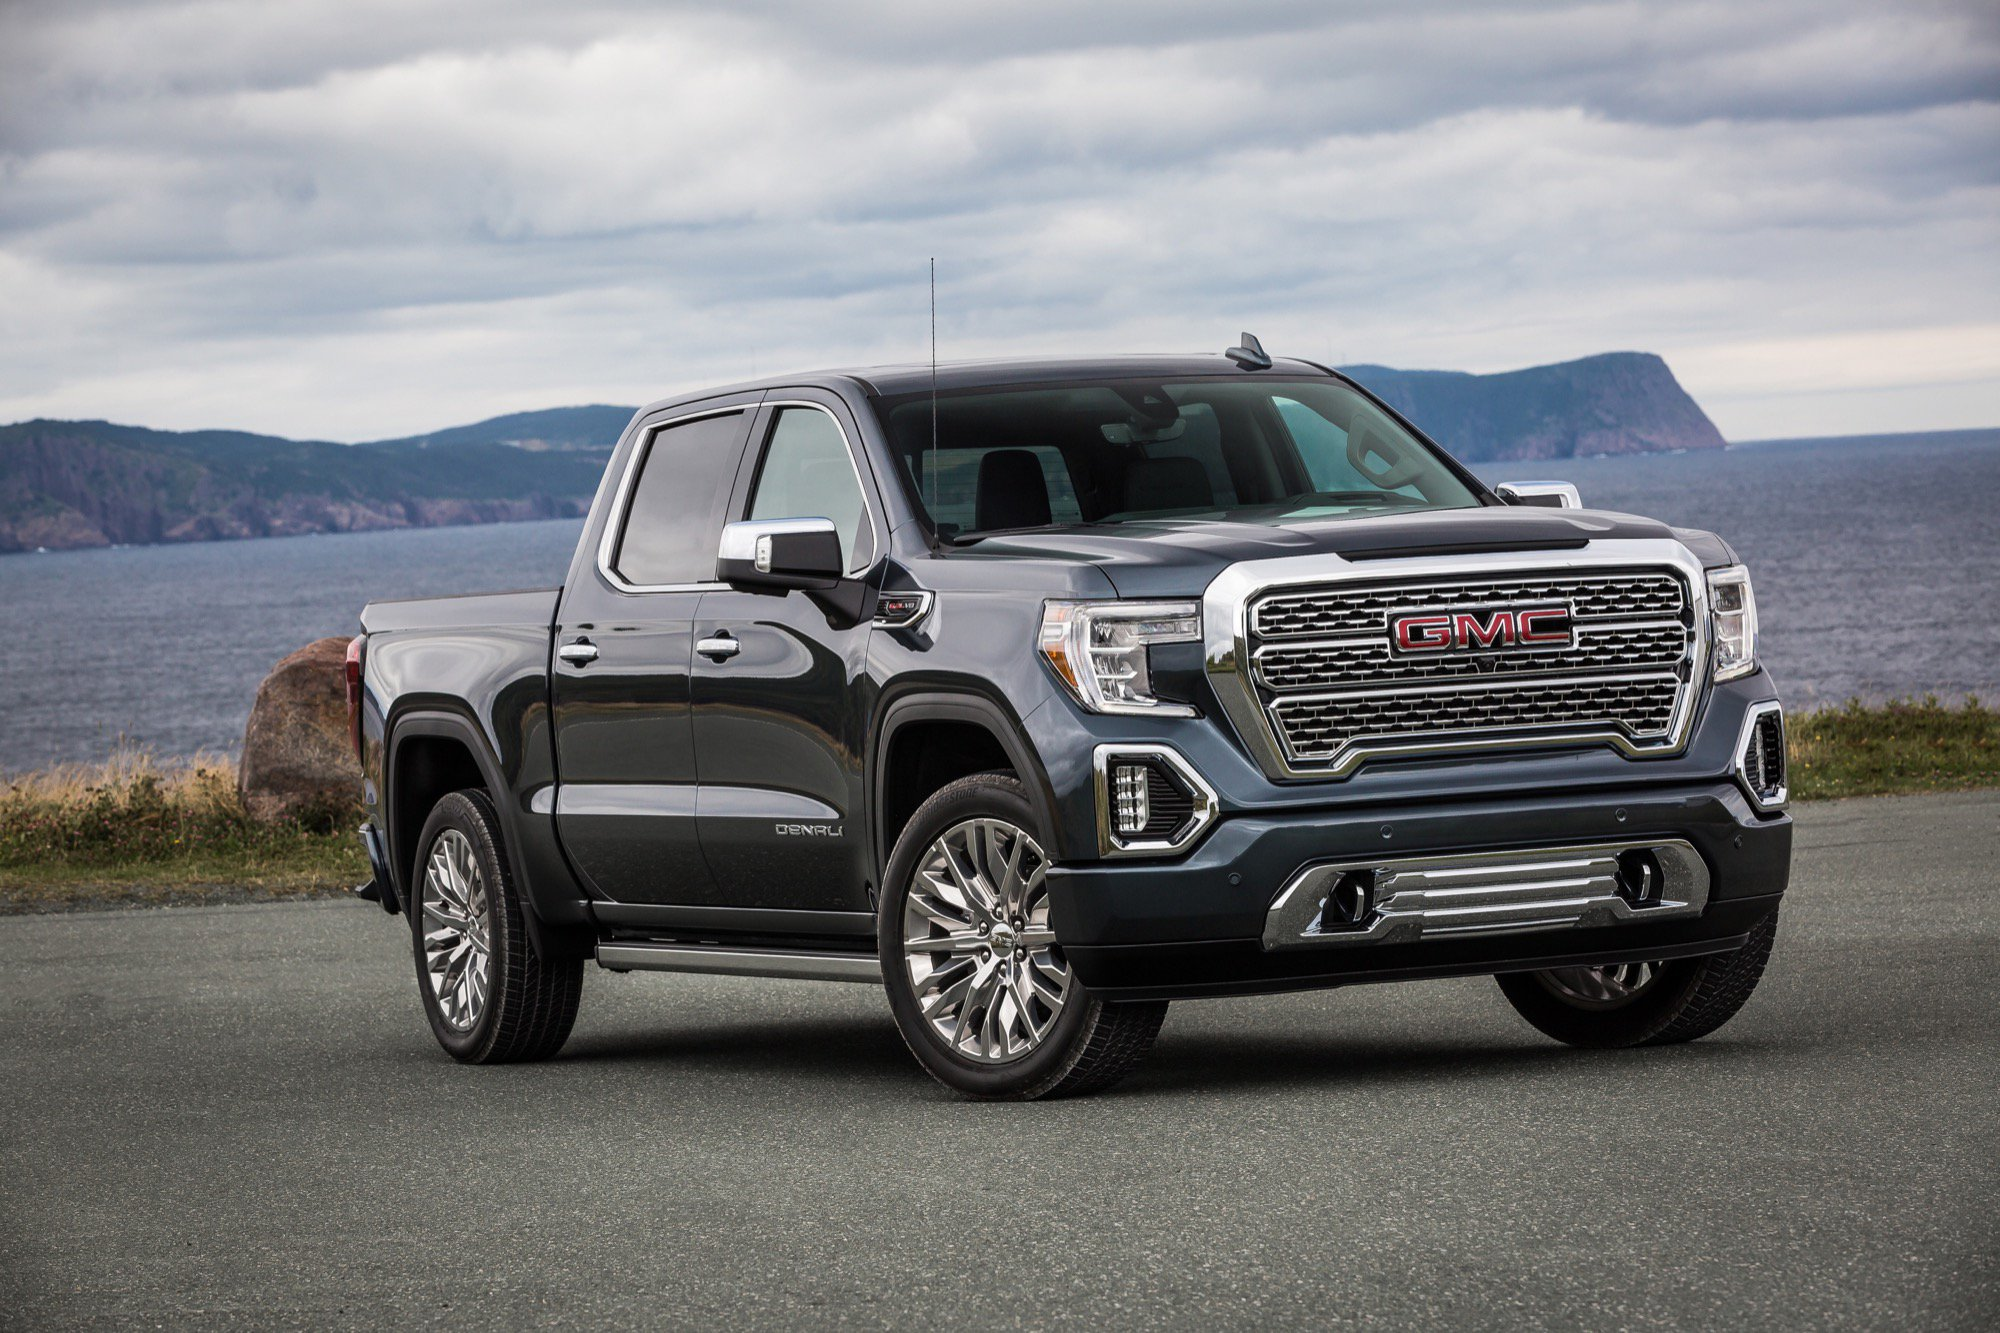 67 All New 2020 GMC Sierra Hd Redesign and Review